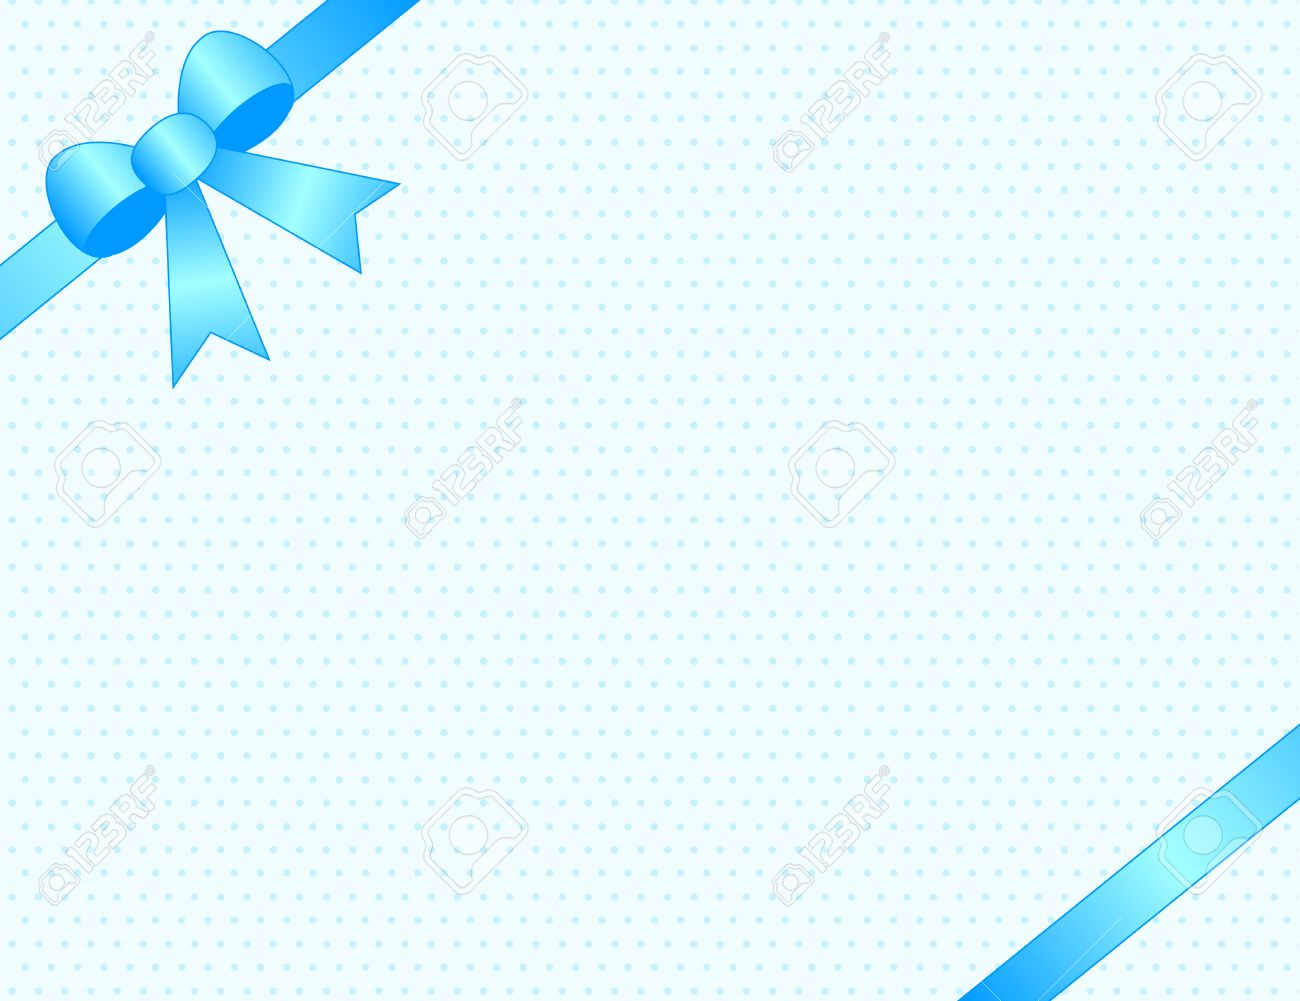 party invitation background image